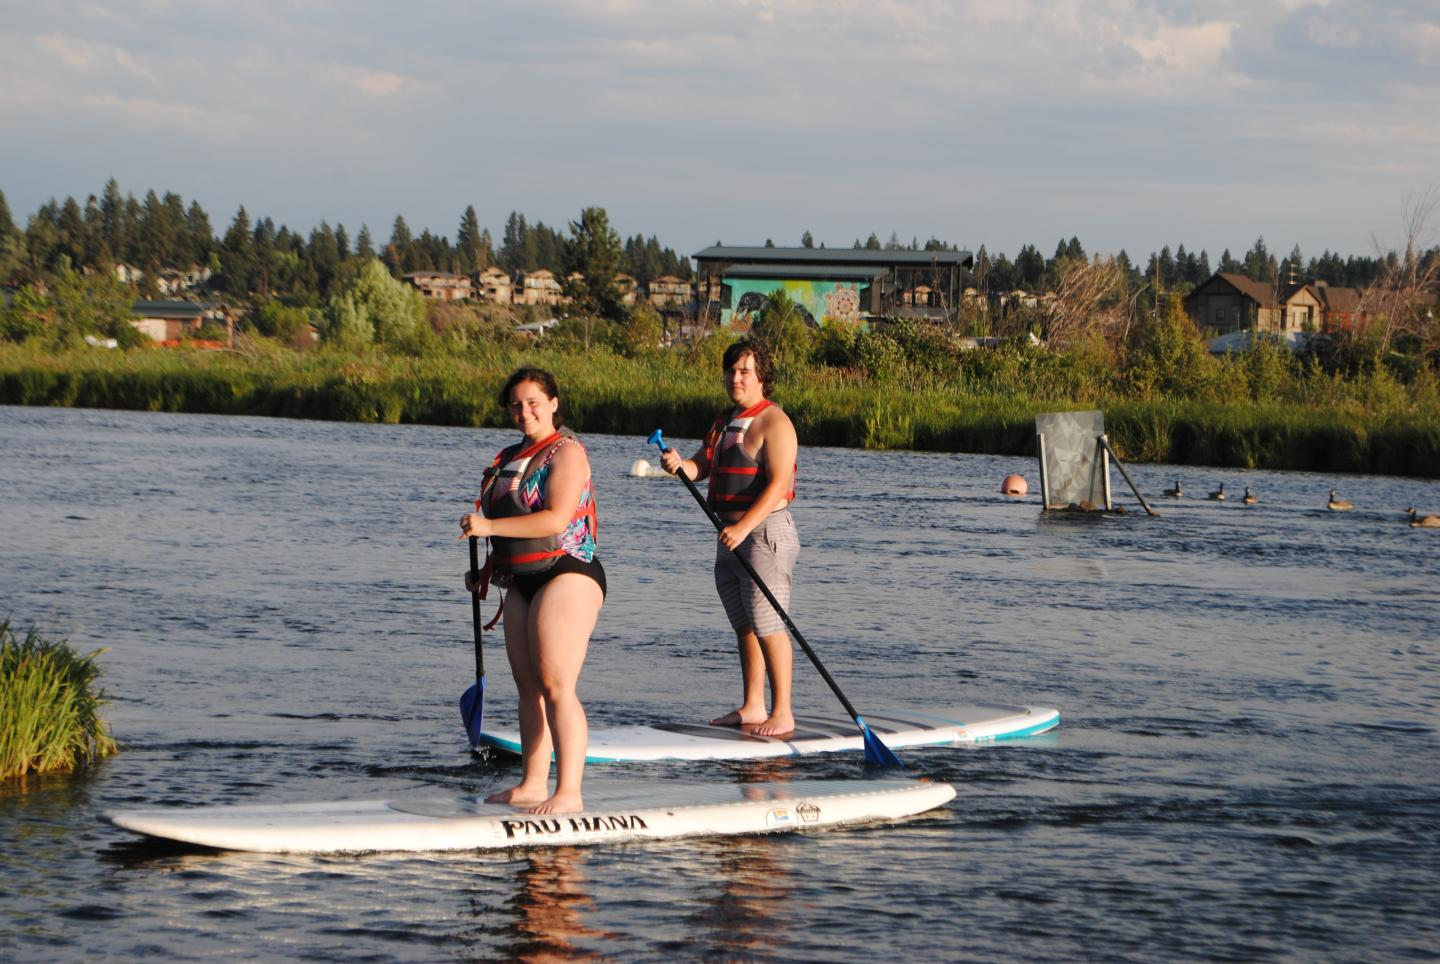 Students go stand-up paddle boarding on their summer teen tour of North America.